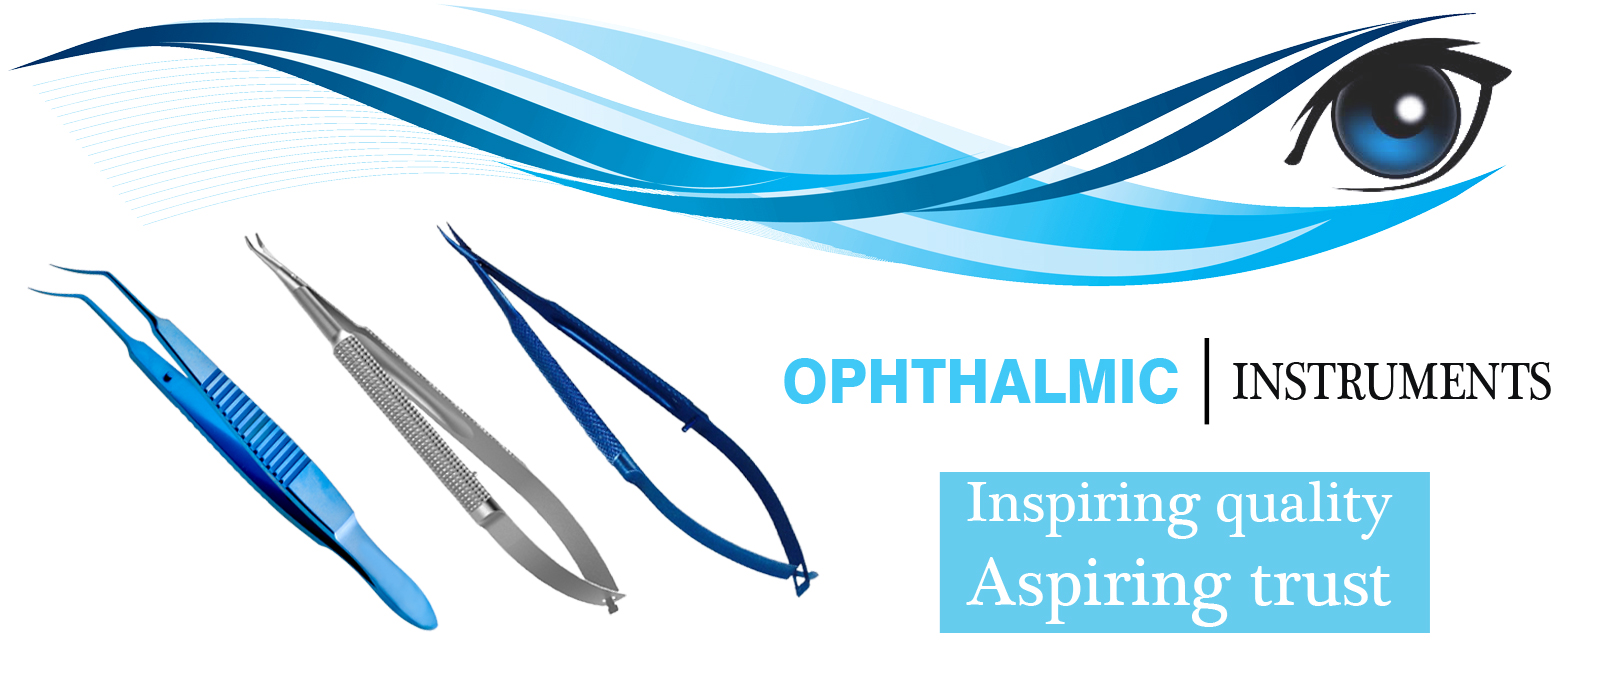 Ophthalmic Instruments | AYS Surgical